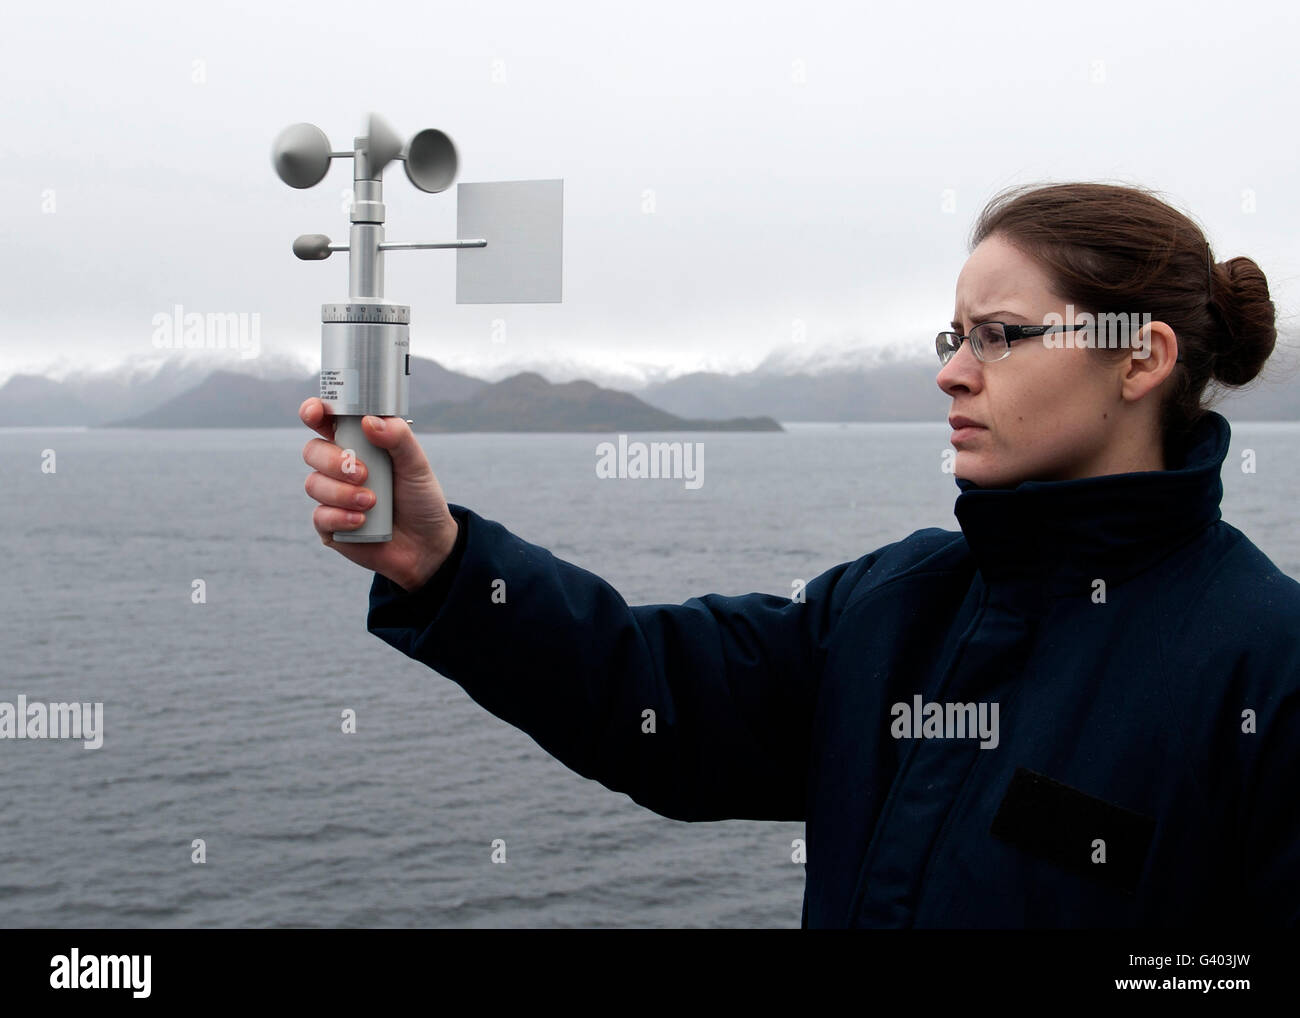 Aerographer's Mate uses an anemometer to measure the wind speed. - Stock Image